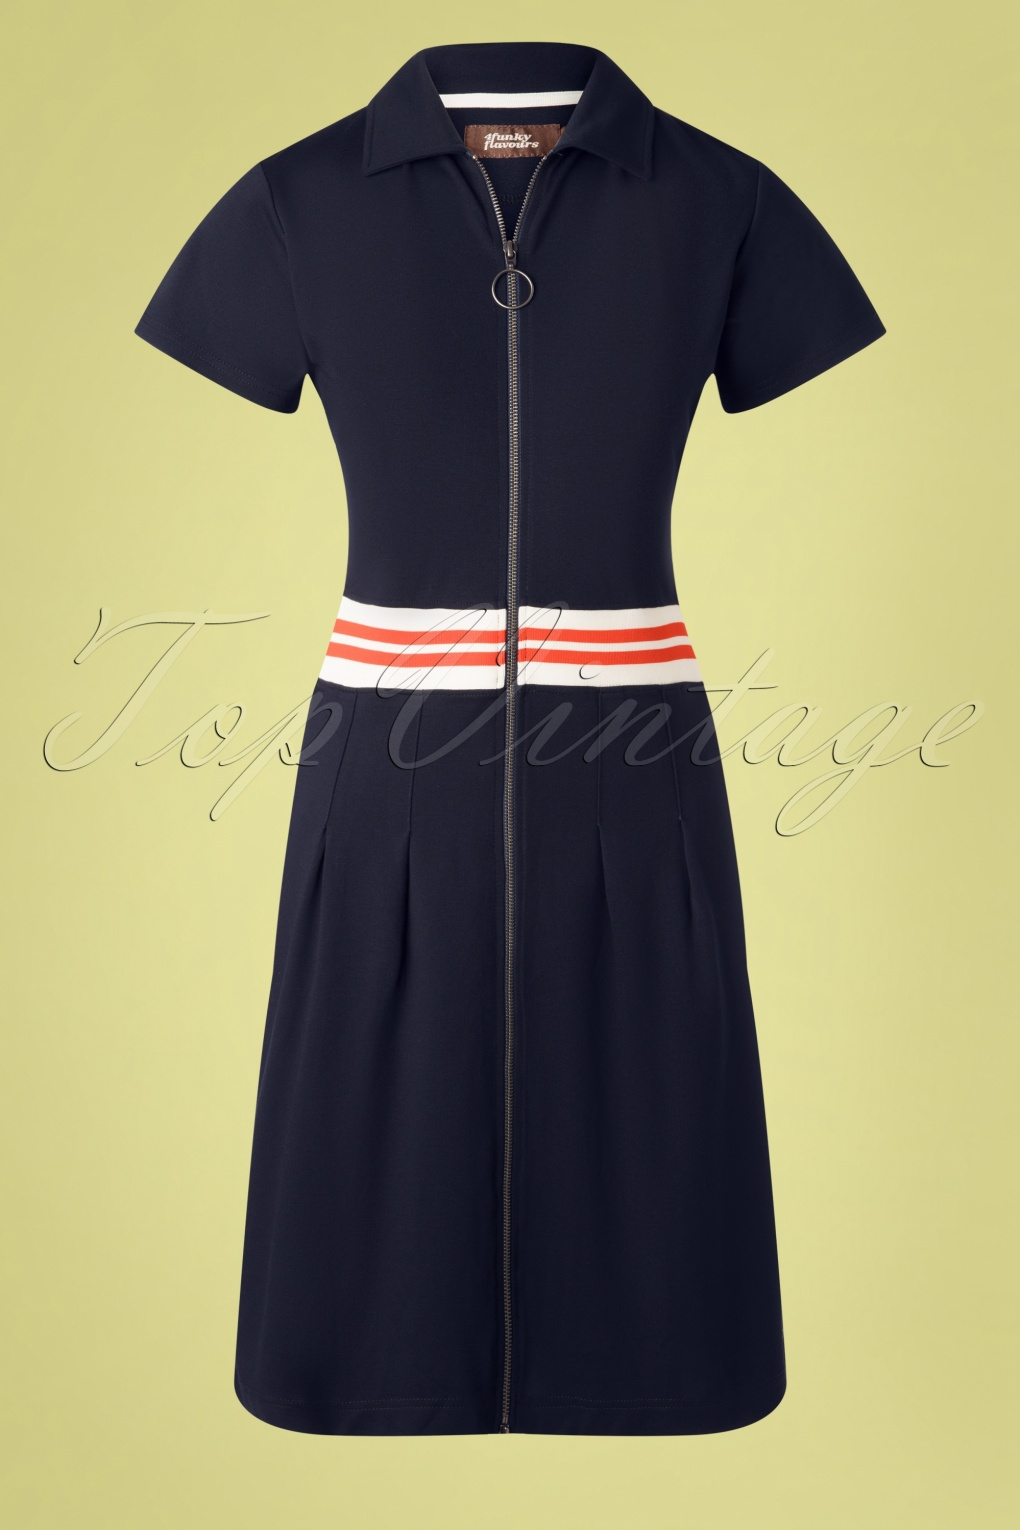 60s Dresses | 1960s Dresses Mod, Mini, Hippie 60s Formula Of Love Dress in Midnight Blue £87.81 AT vintagedancer.com